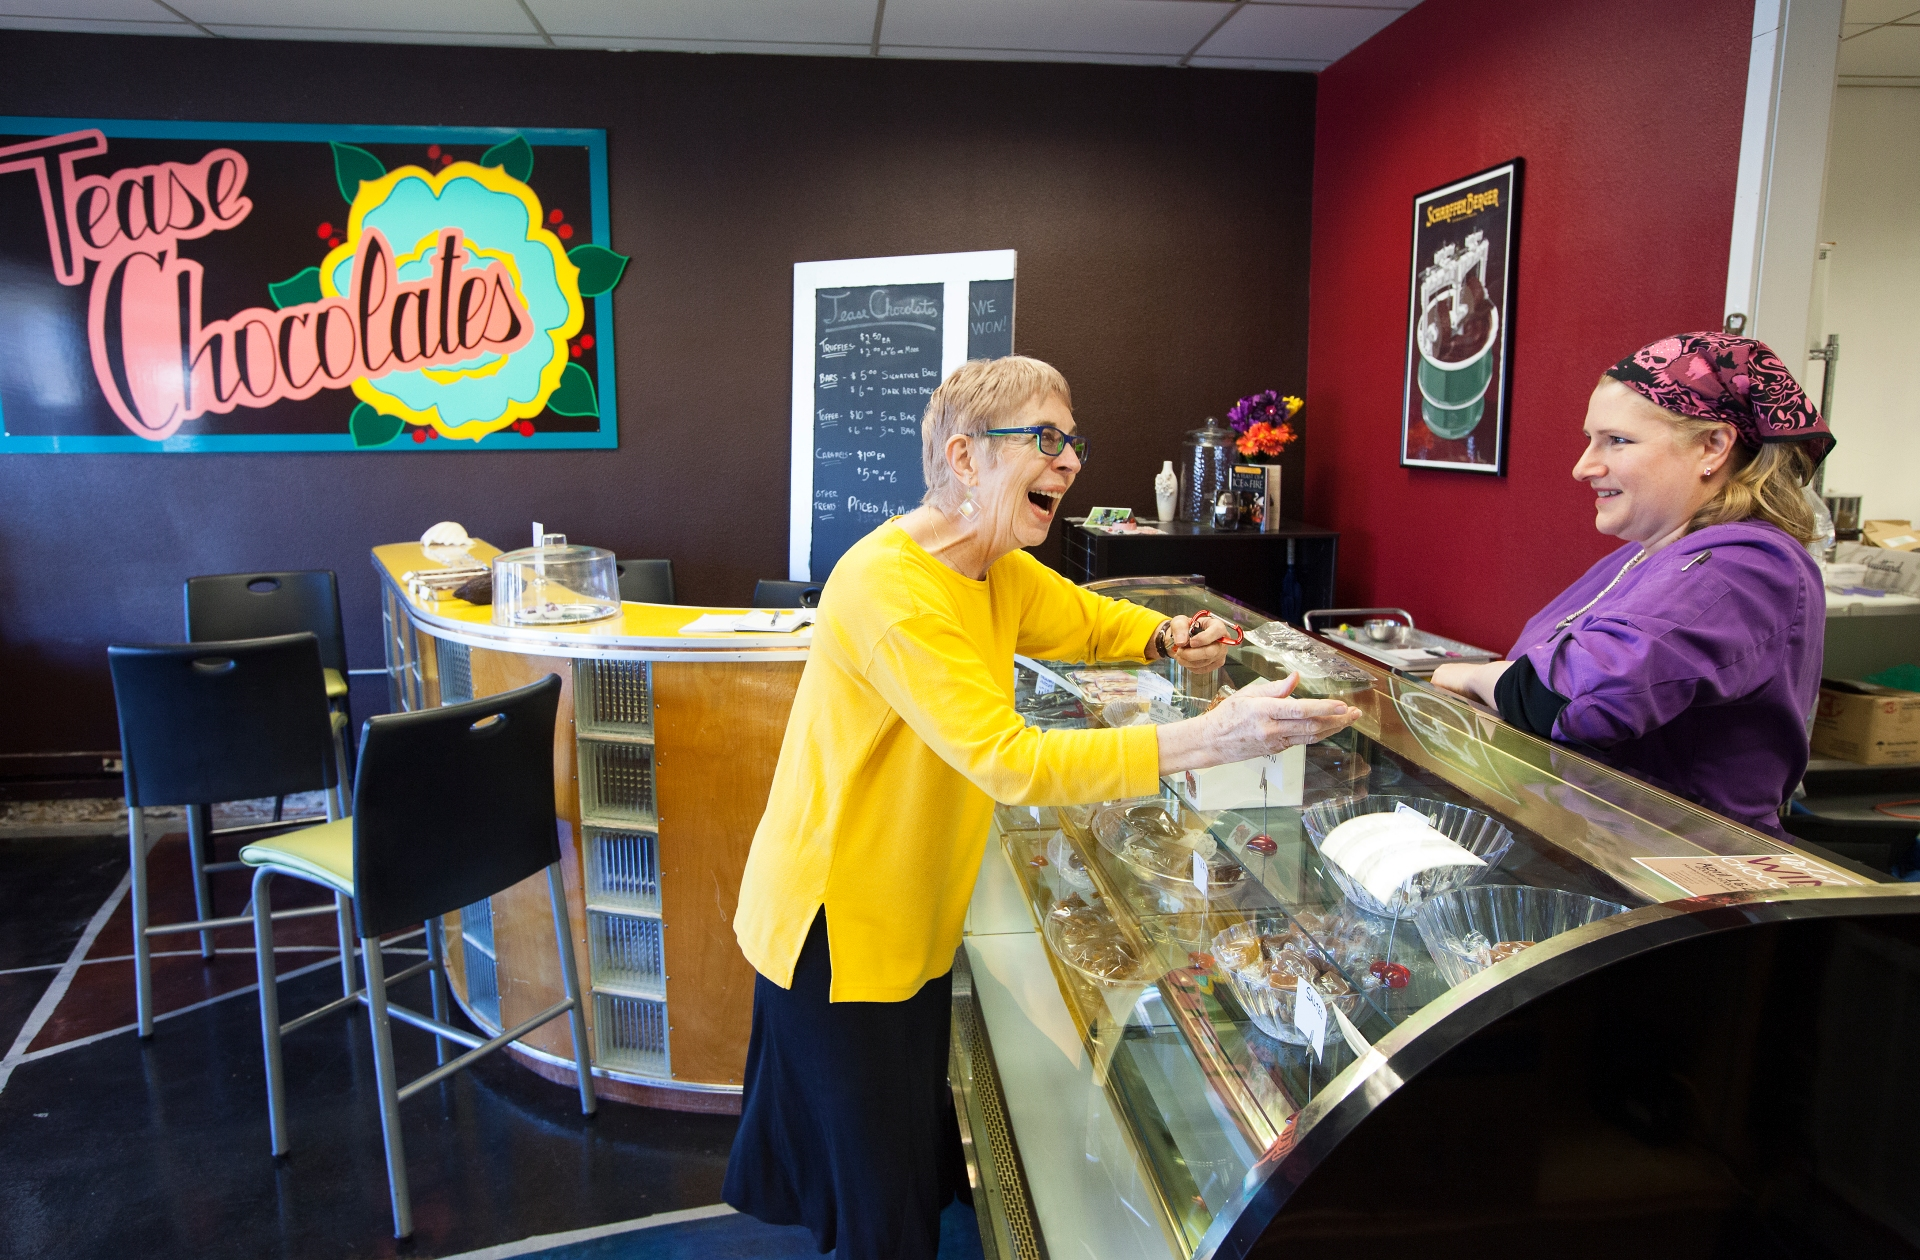 Tease Chocolates co-owner Julie Farrell shares a laugh with a customer in her shop.